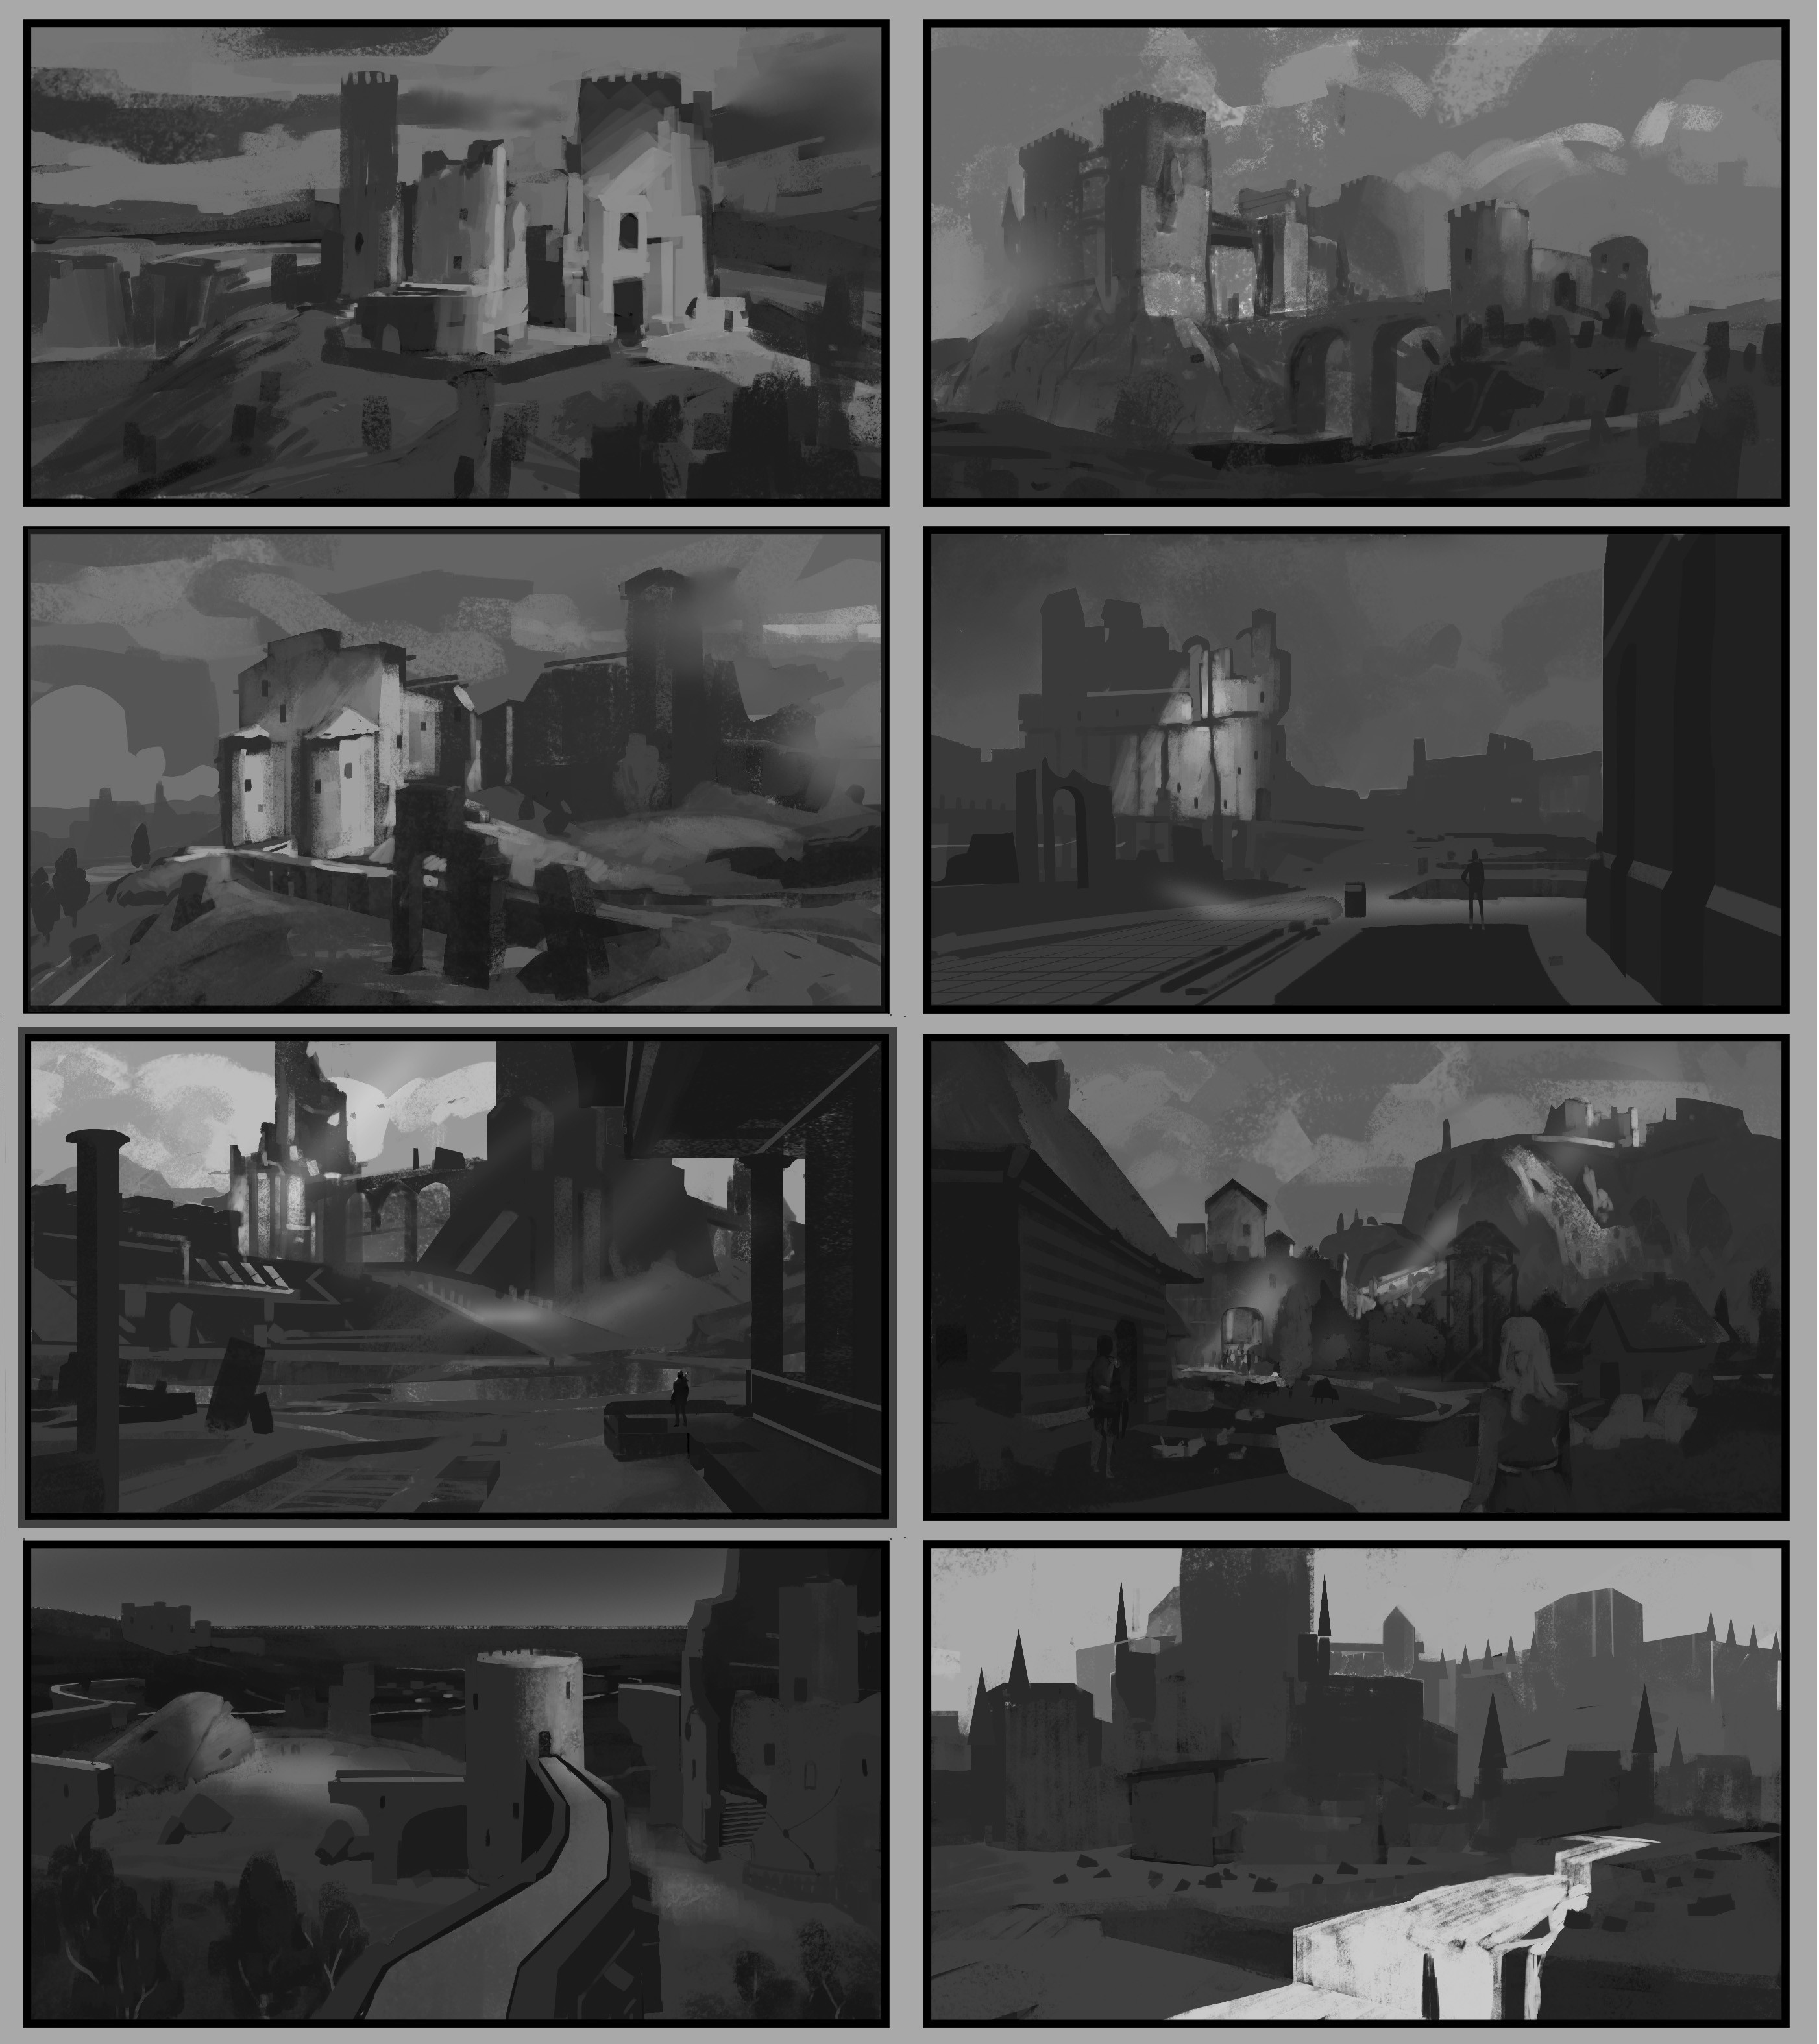 composition explorations from imagination